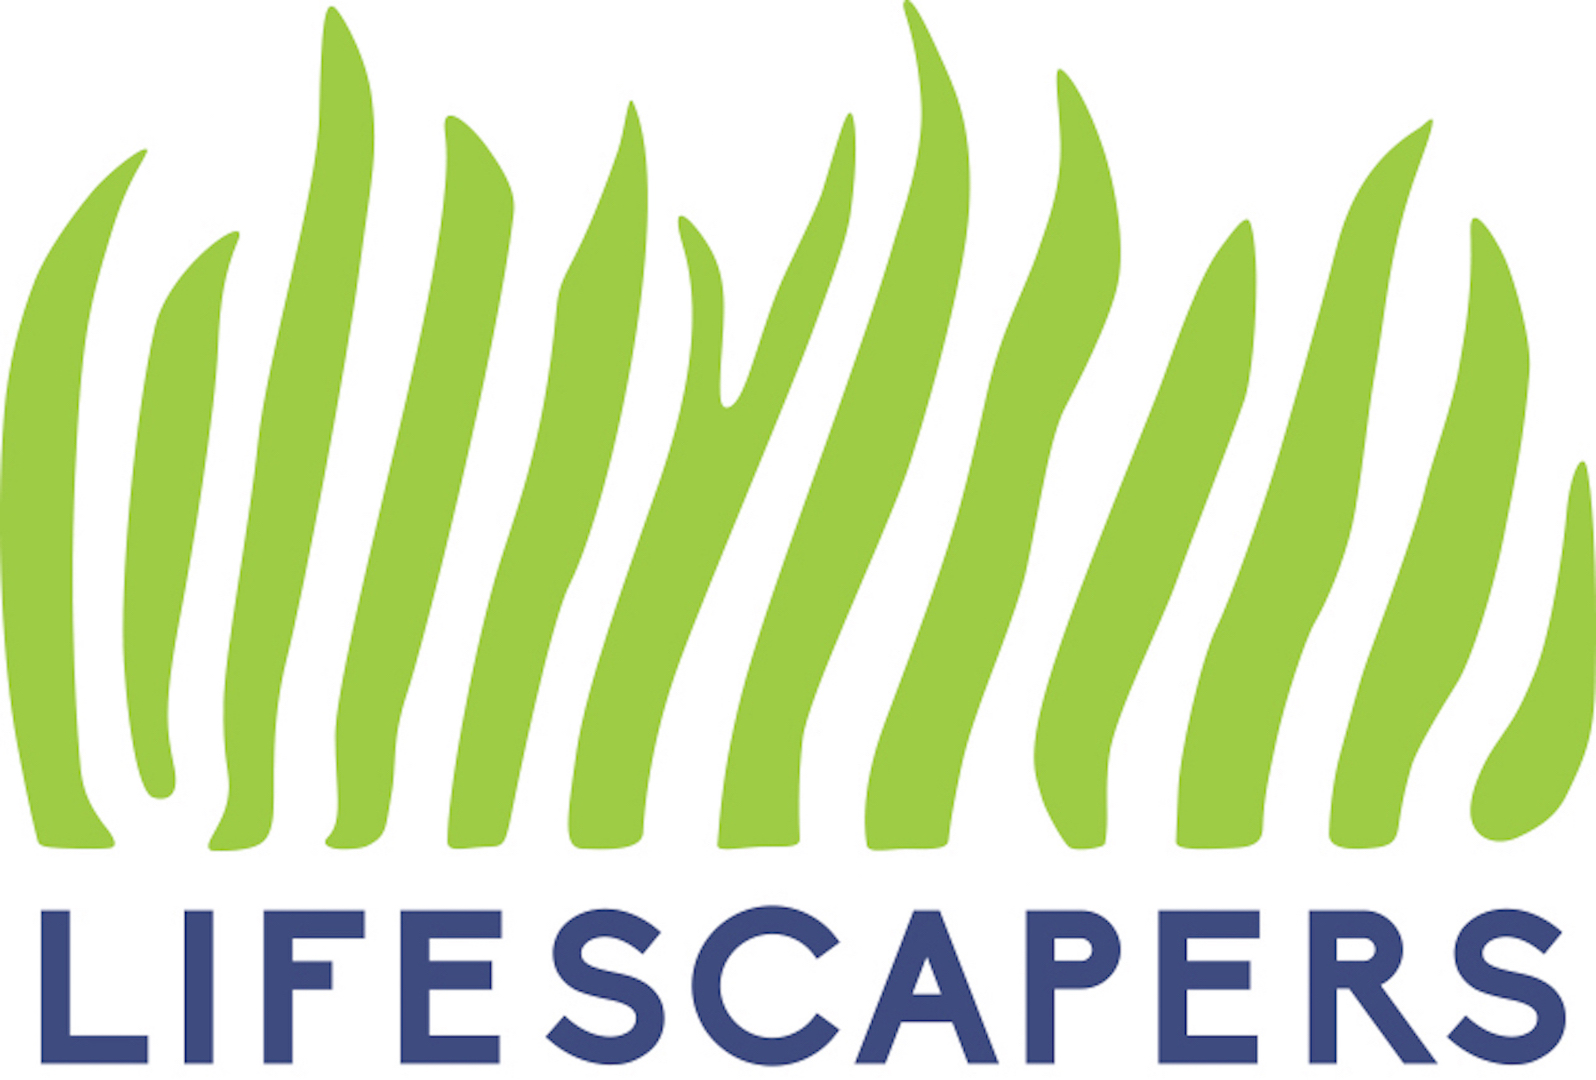 Lifescapers